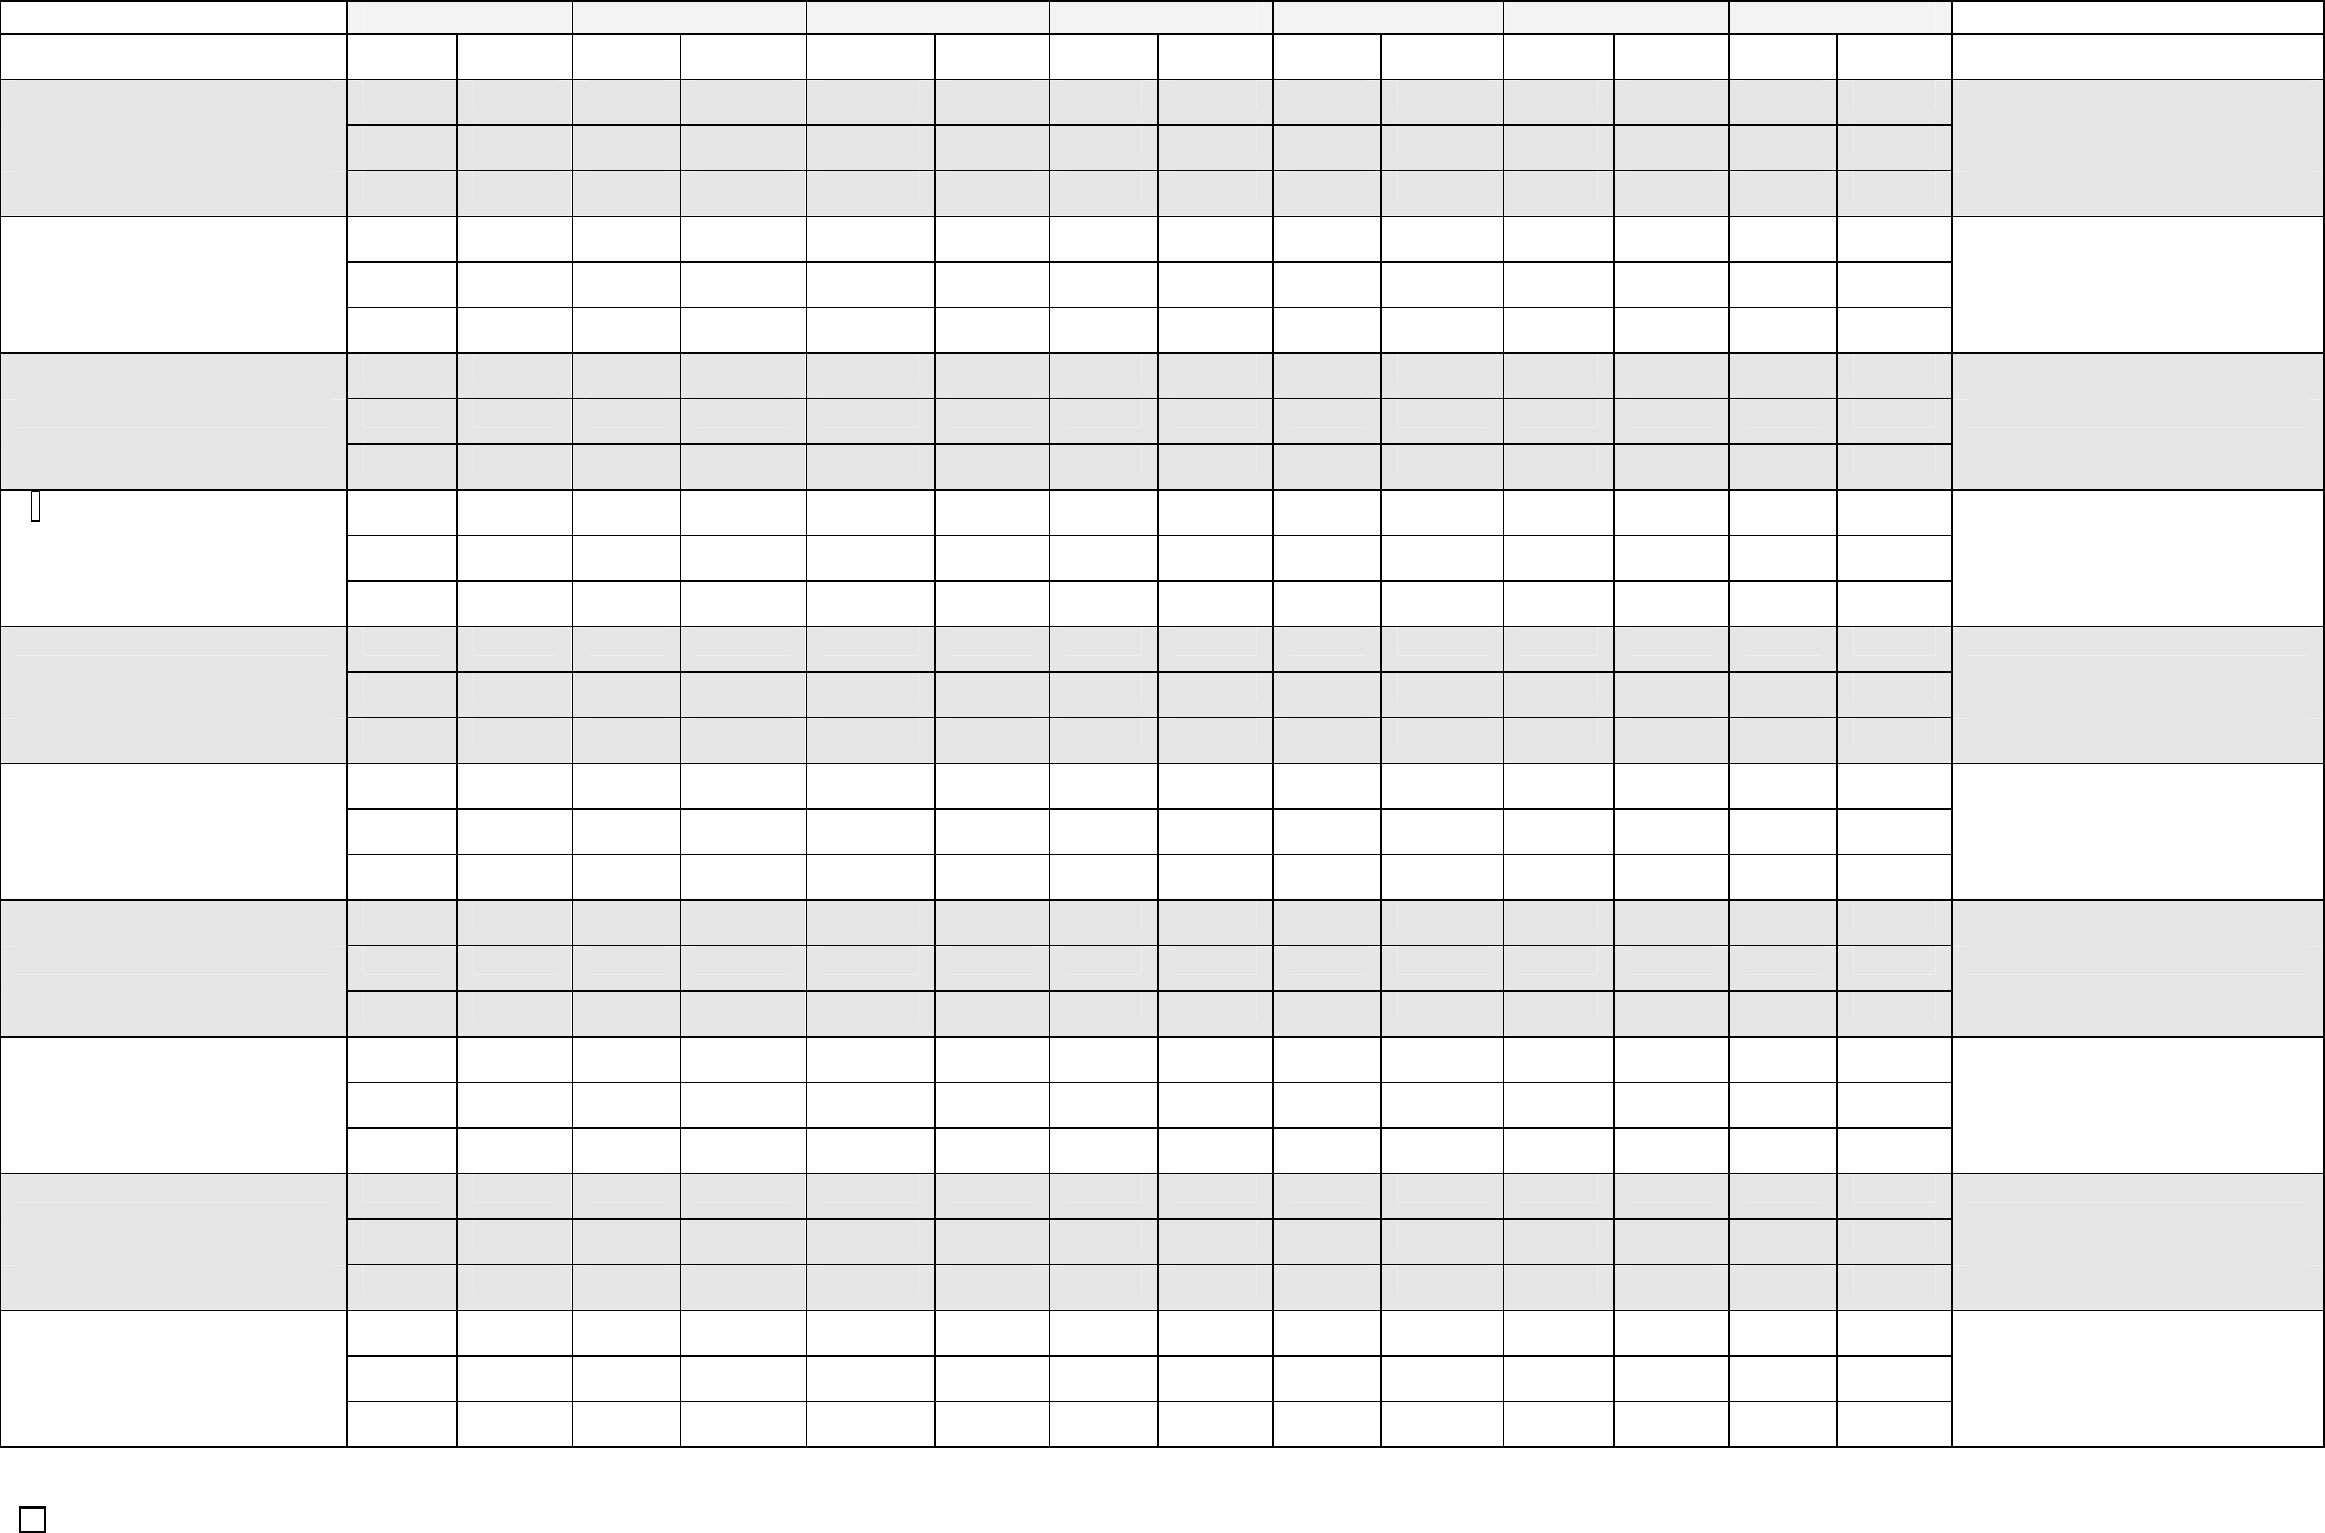 Children Weekly Attendance Sheet Free Download